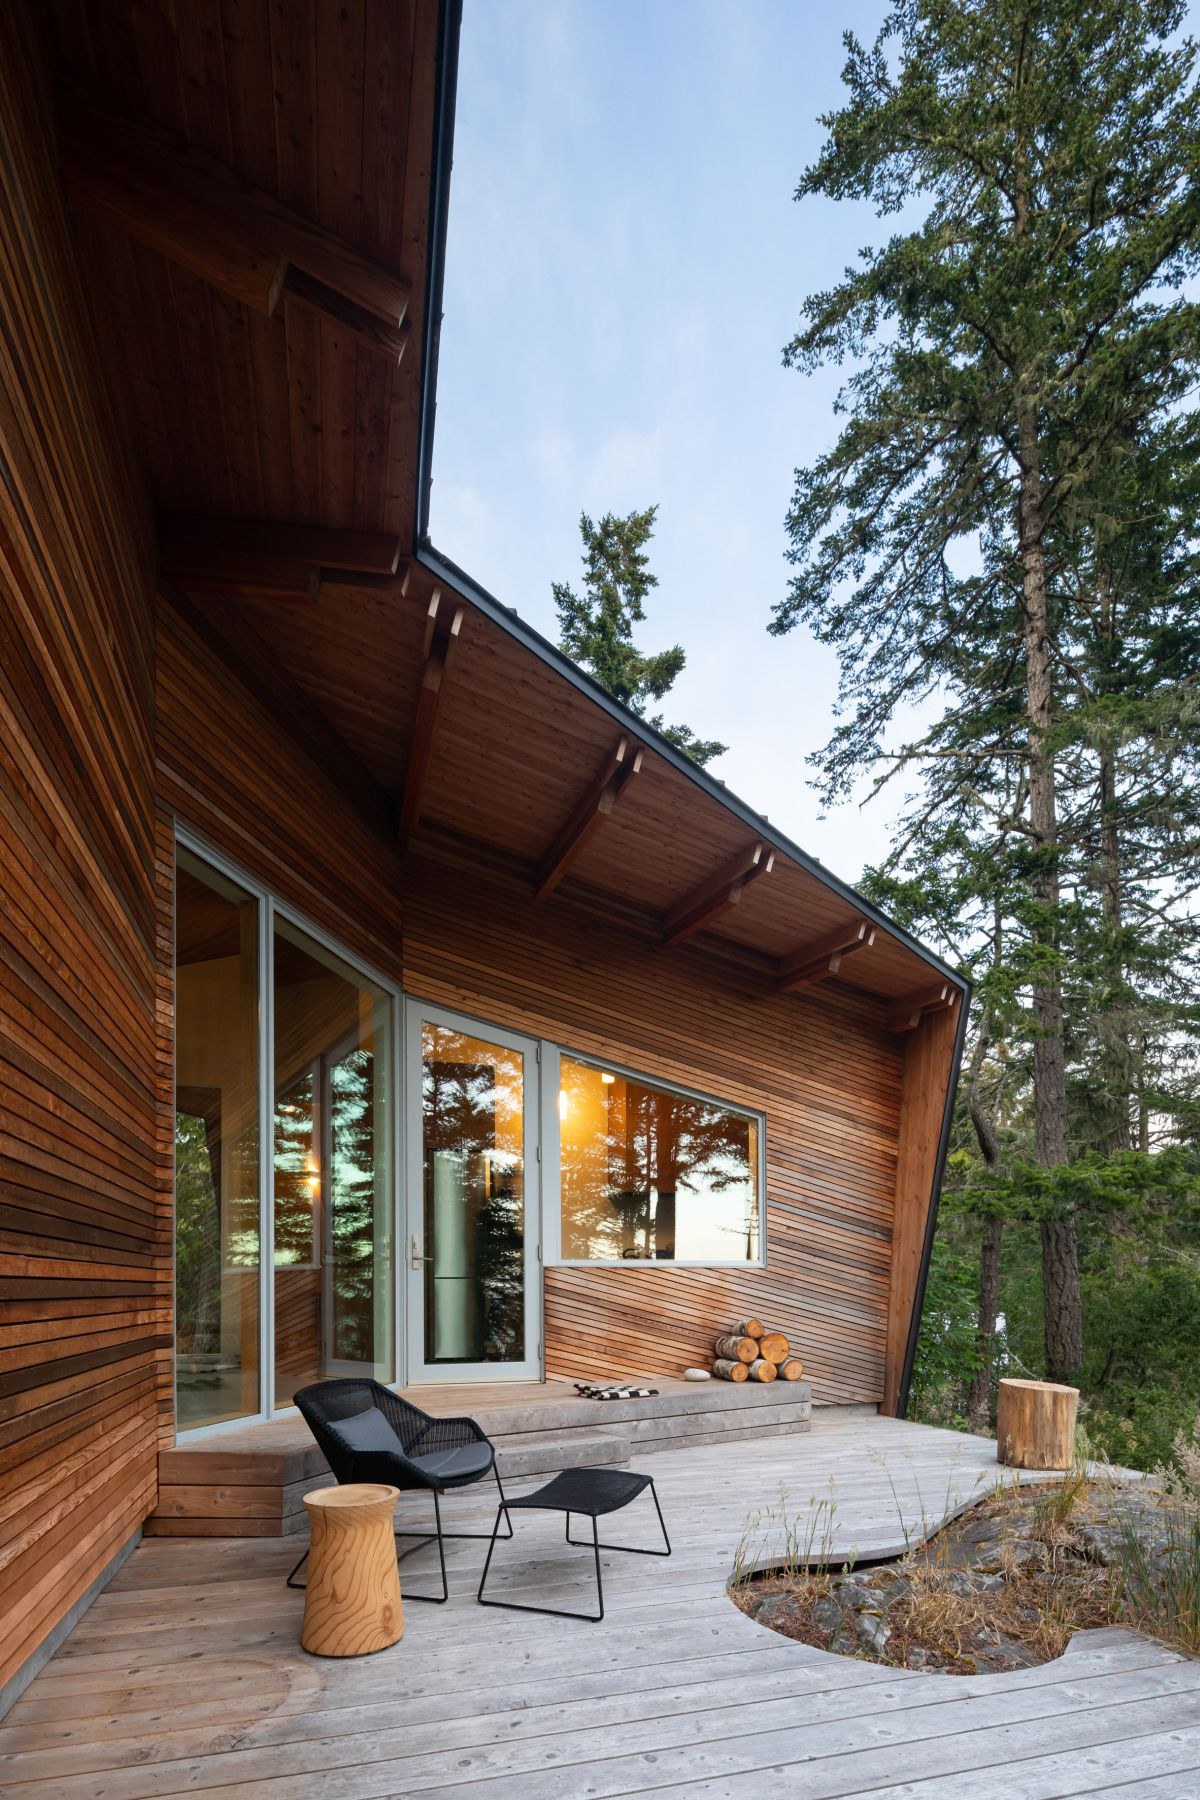 The interior areas are organized around the social spaces and extend out onto a small wooden deck